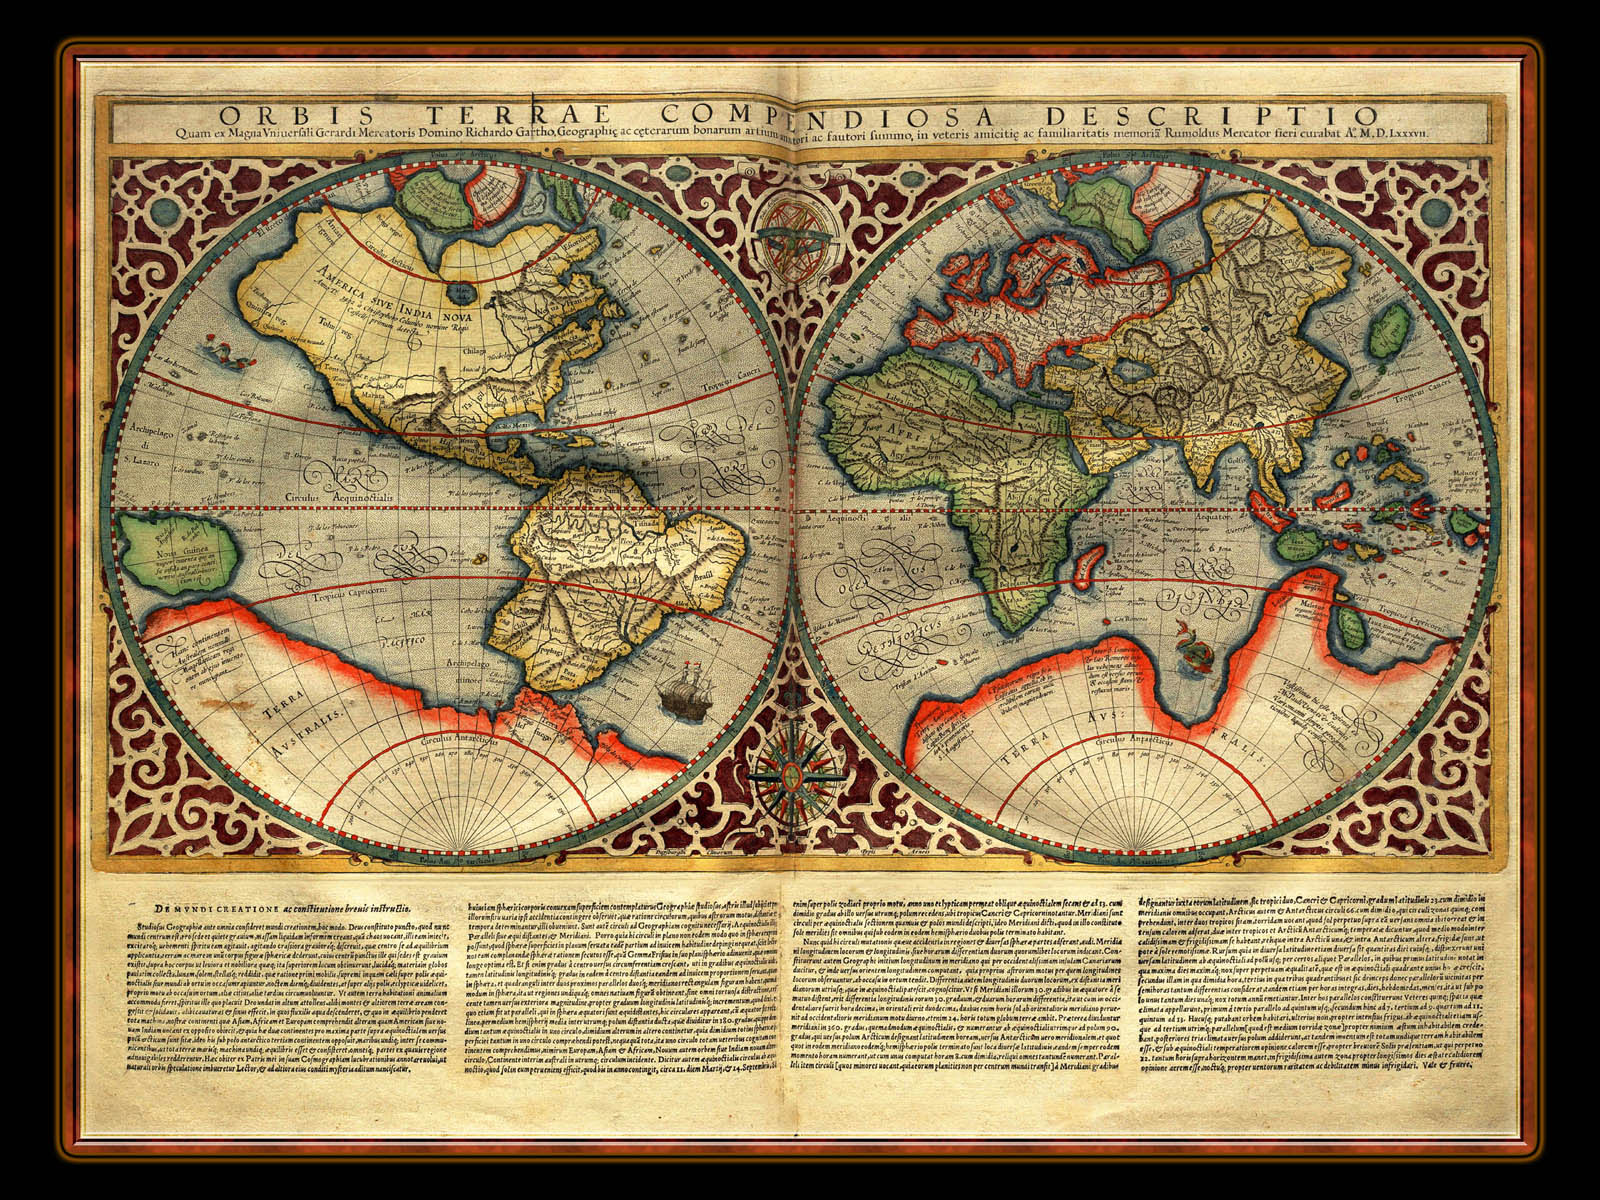 """Gerhard Mercator 1595 World Atlas - Cosmographicae"" - Wallpaper No. 106 of 106. Right click for saving options."